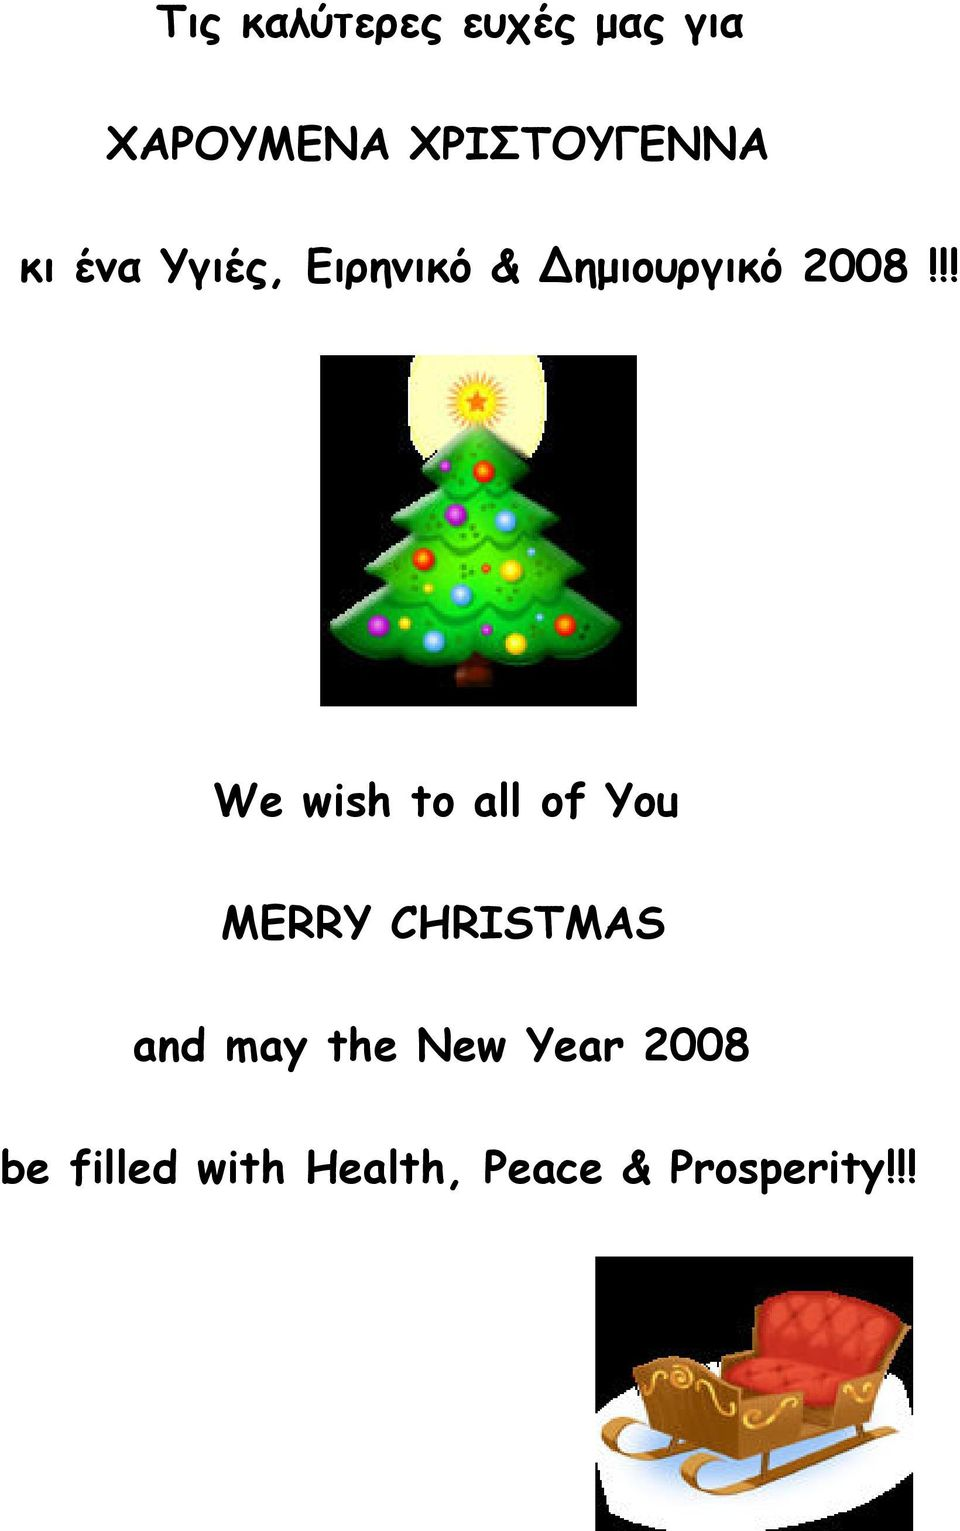 !! We wish to all of You MERRY CHRISTMAS and may